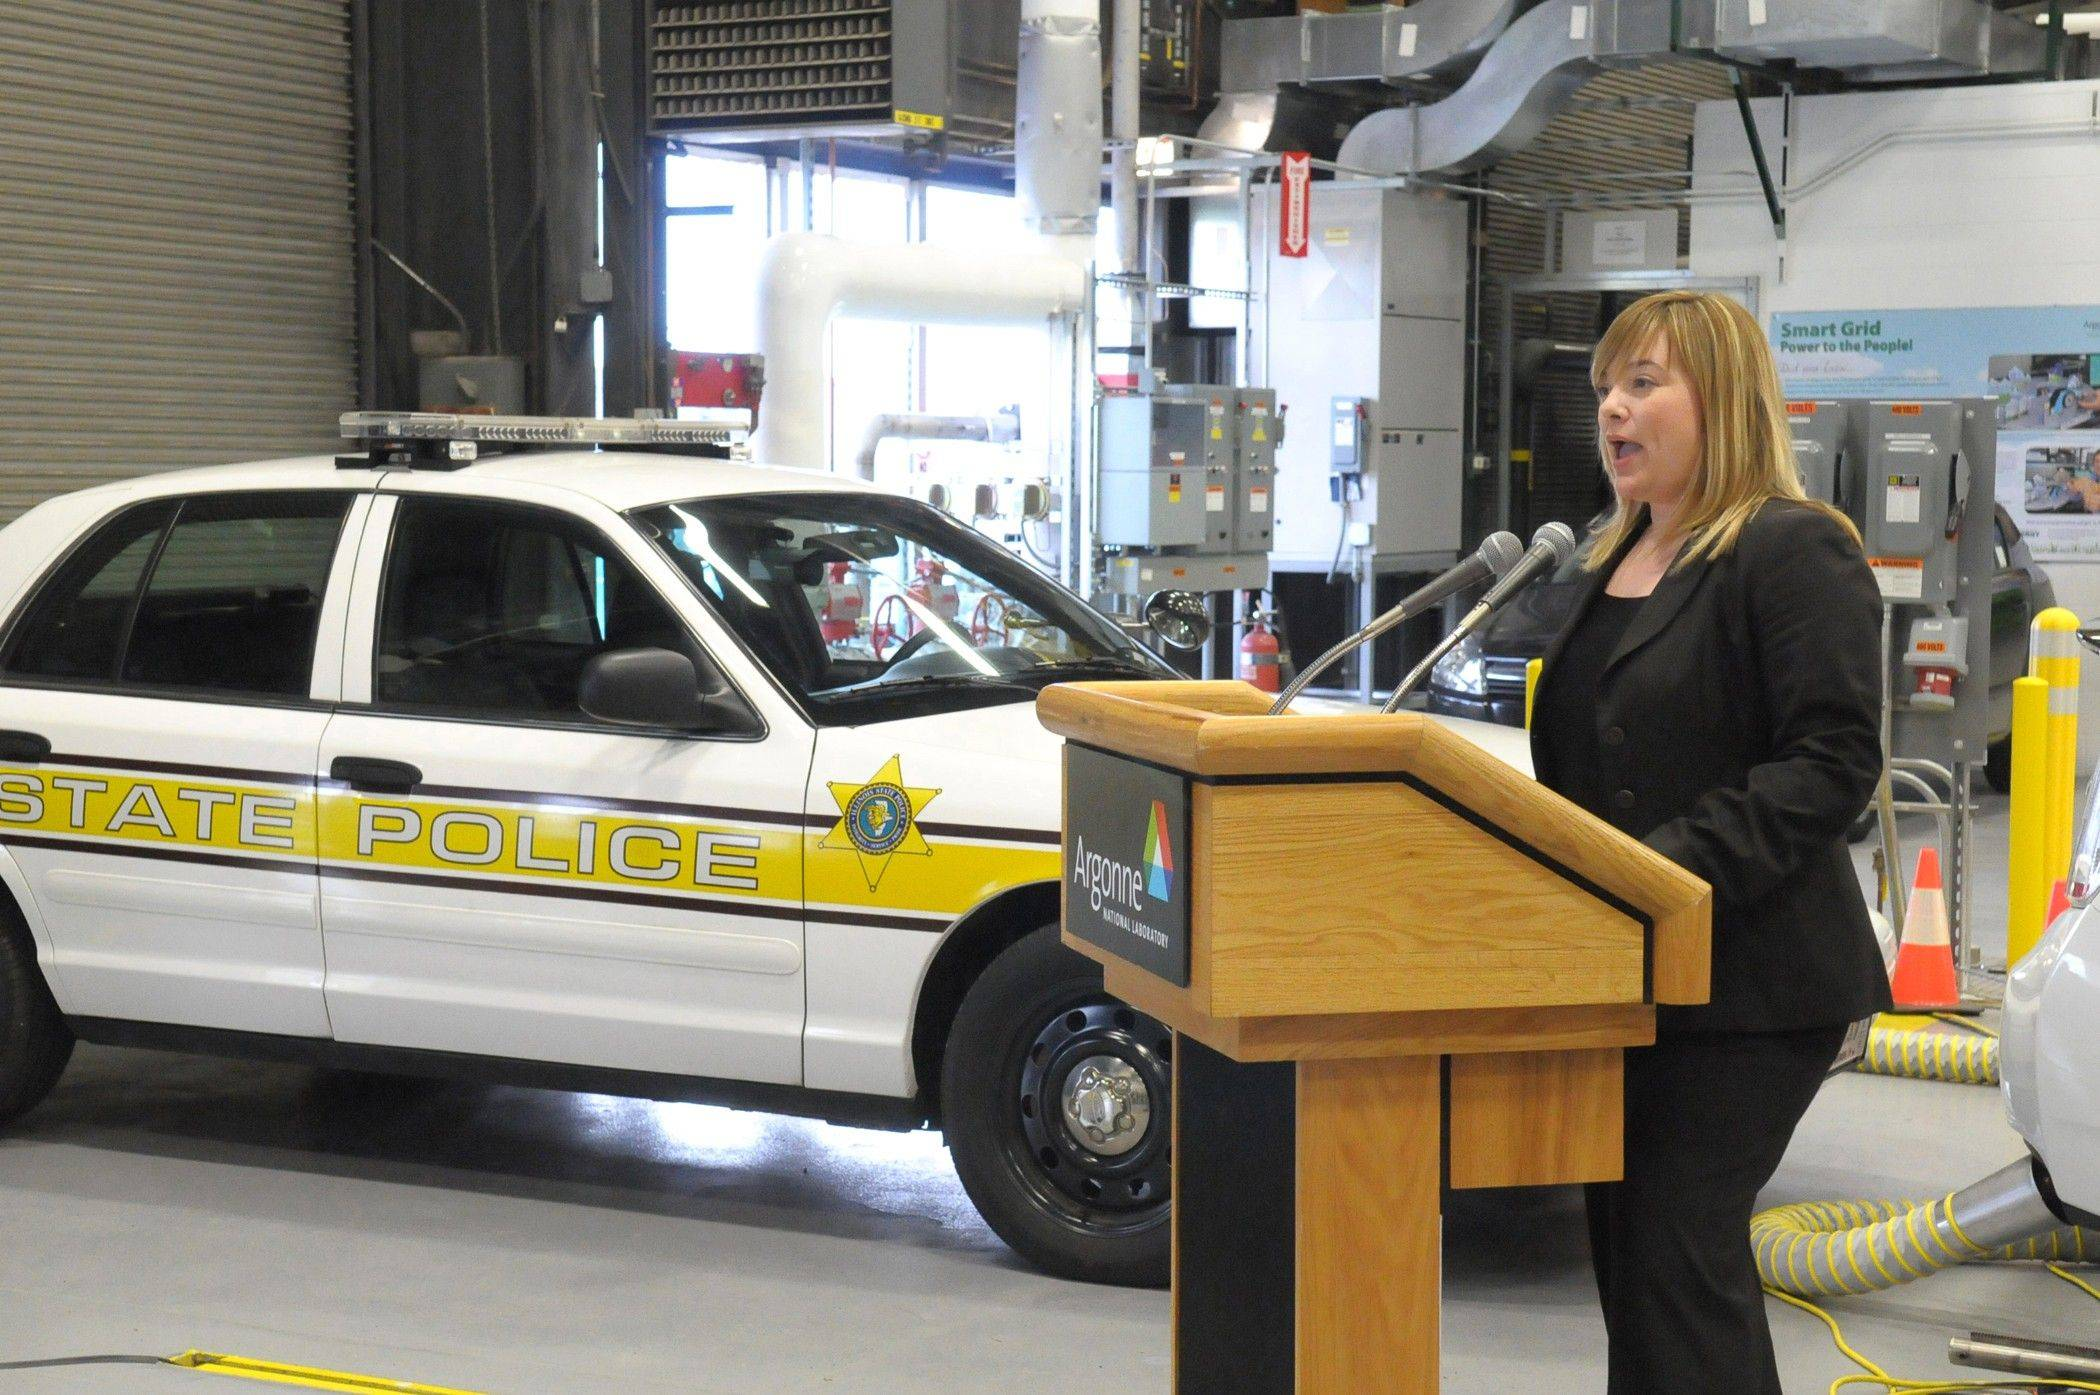 Illinois State Toll Highway Authority Executive Director Kristi Lafleur talks about the agency's partnership with Argonne National Laboratory. A State Police squad car will be tested by scientists at Argonne's Transportation Research Center for ways to increase fuel efficiency, such as reduced idling.